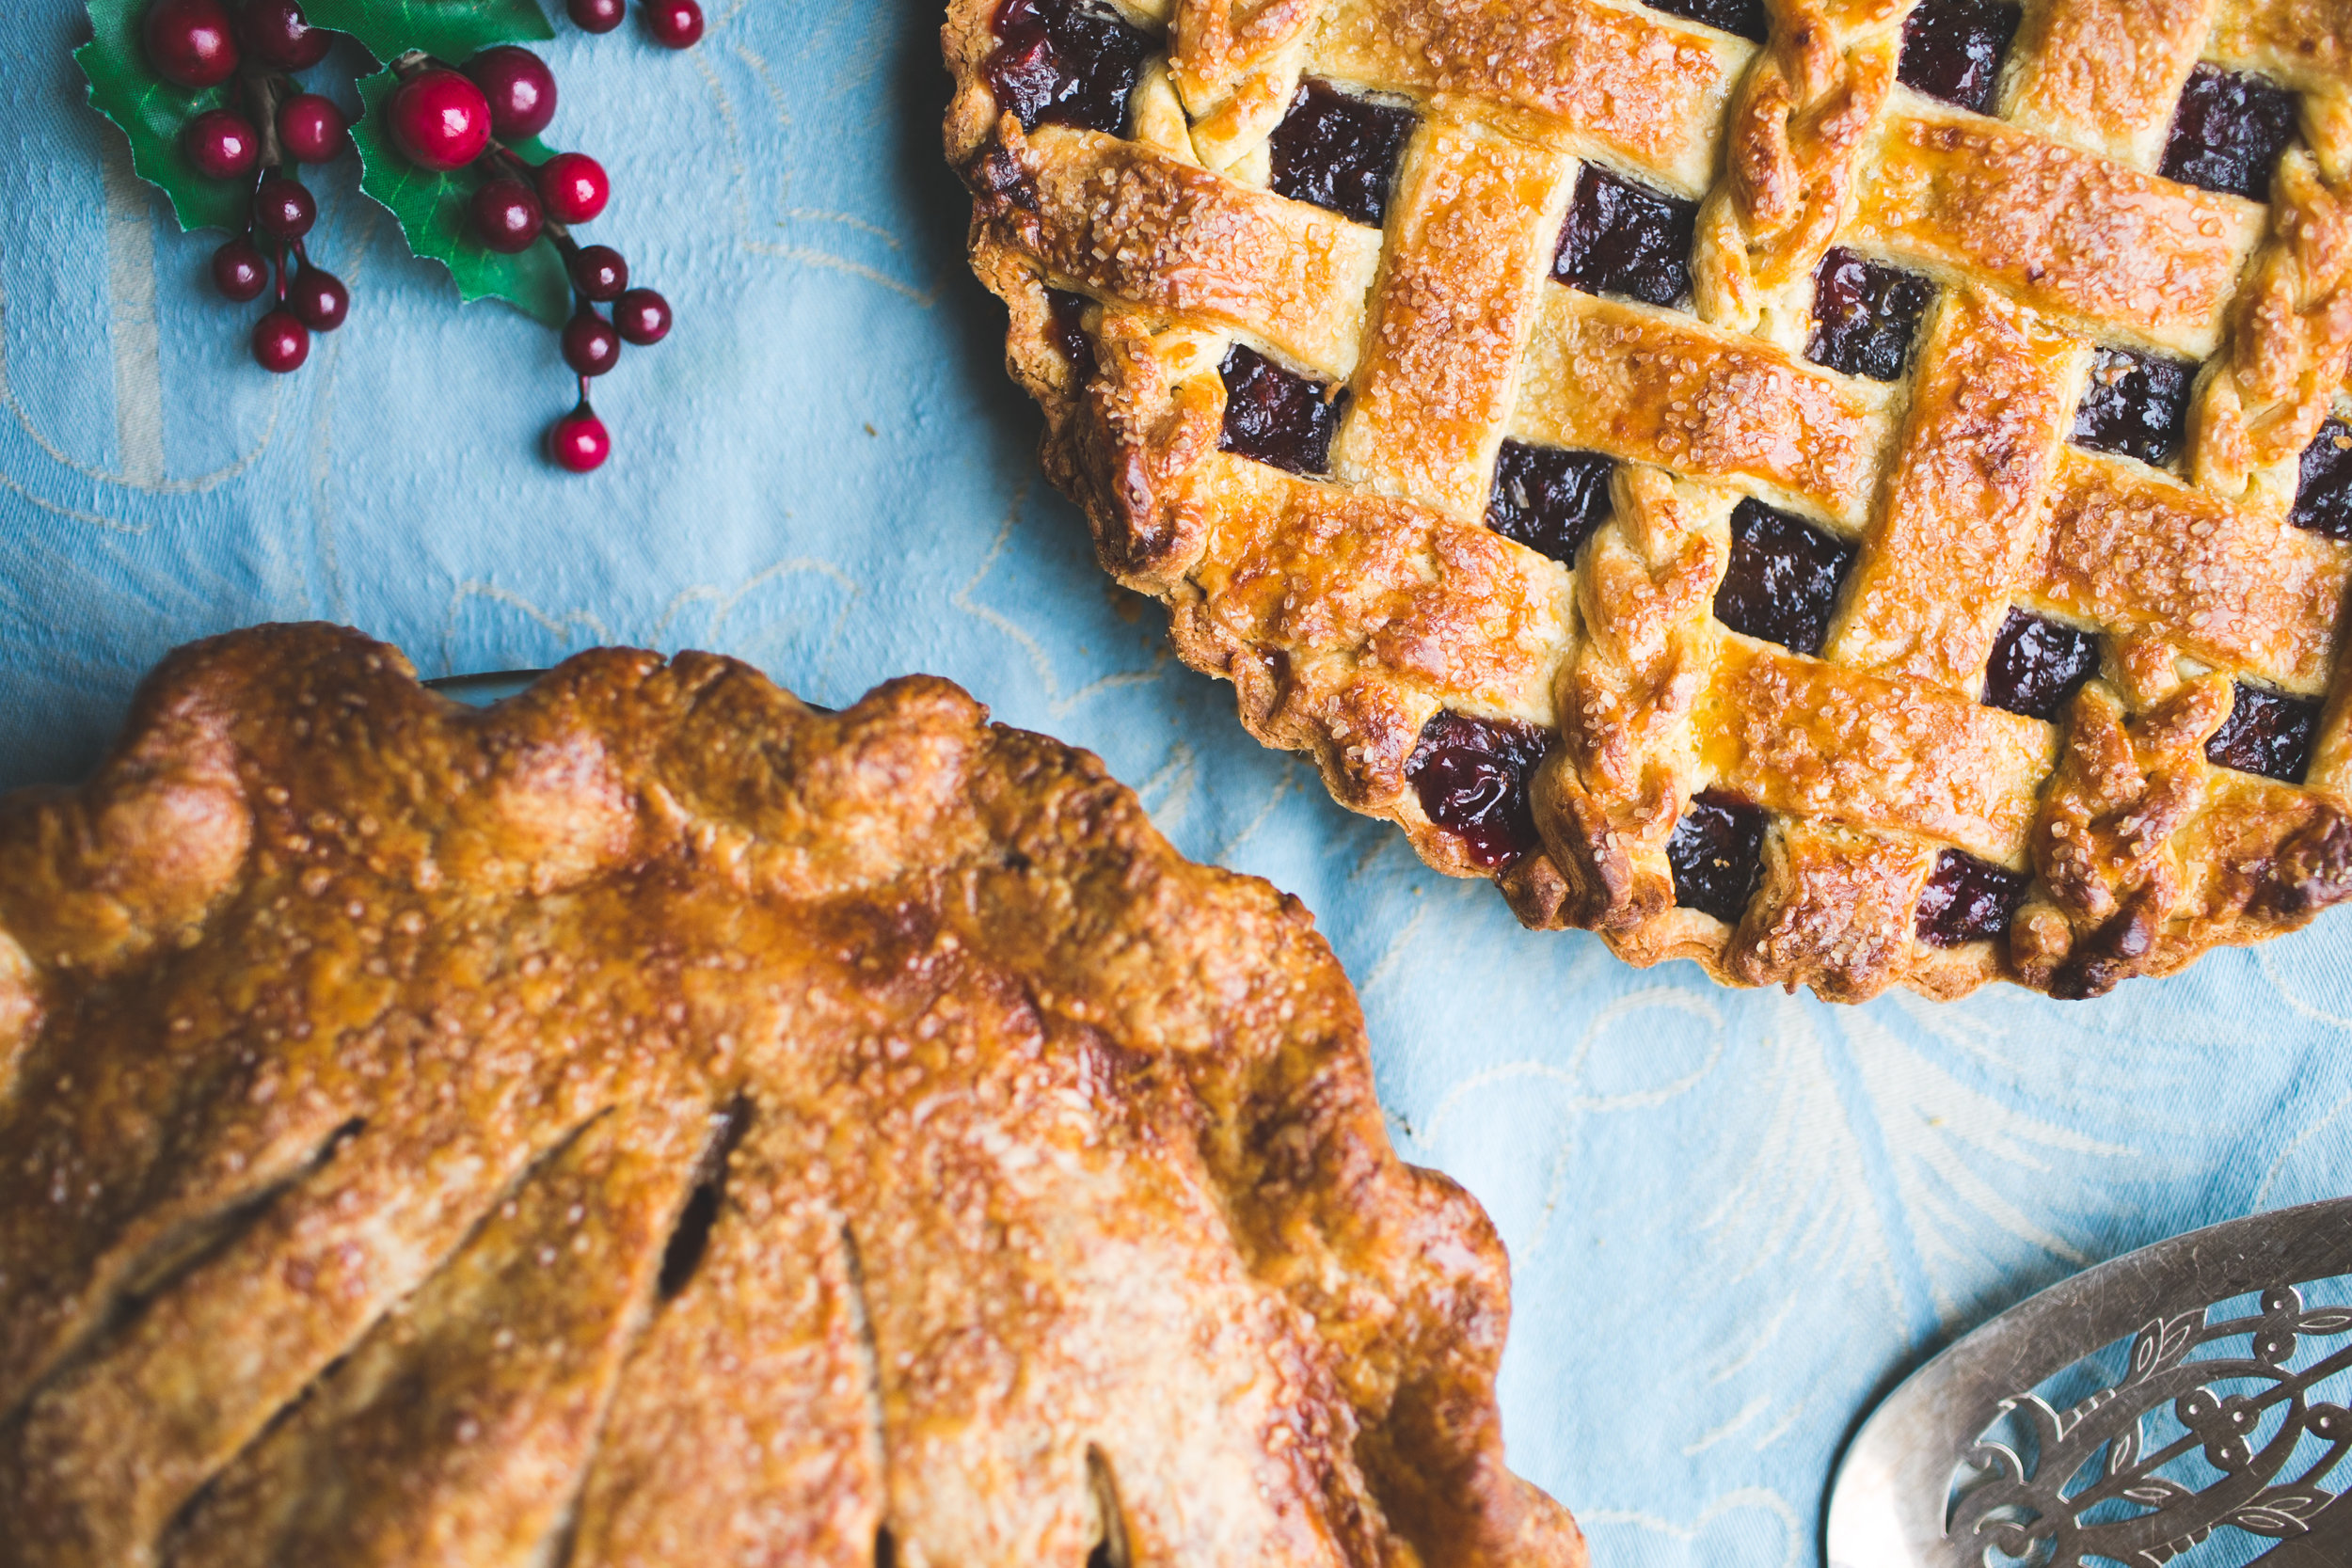 Classic Apple Pie and a Cranberry Lattice Tart